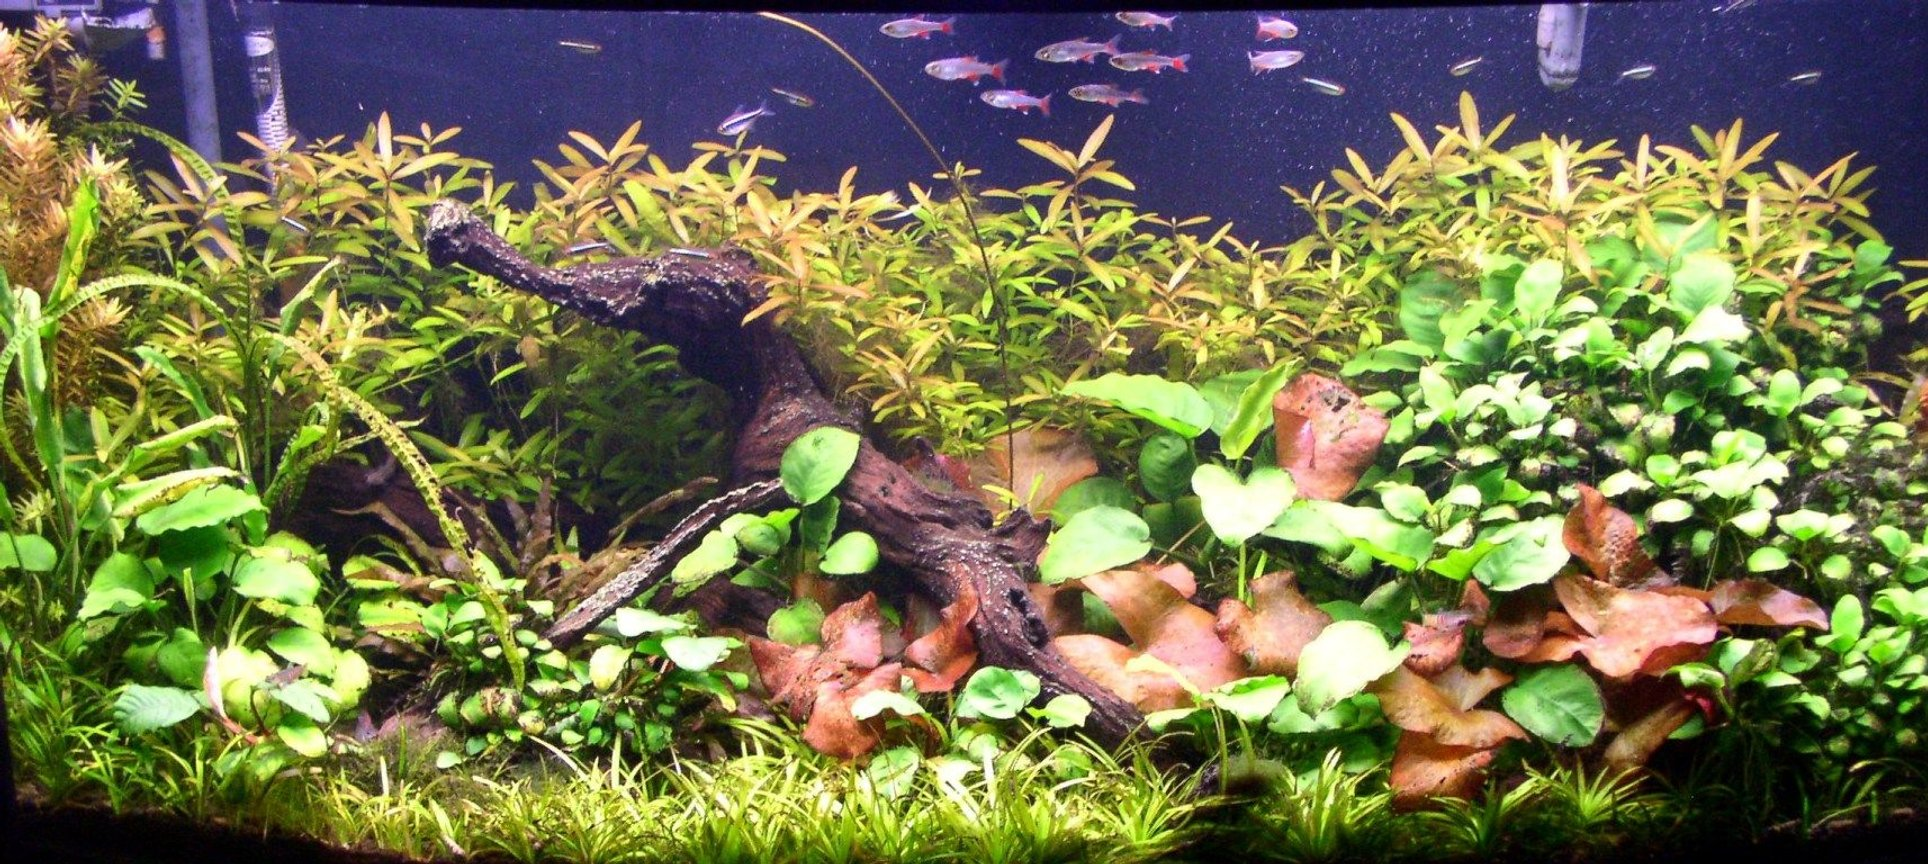 125 gallons planted tank (mostly live plants and fish) - 72 Gallon Bowfront, hardwater plants